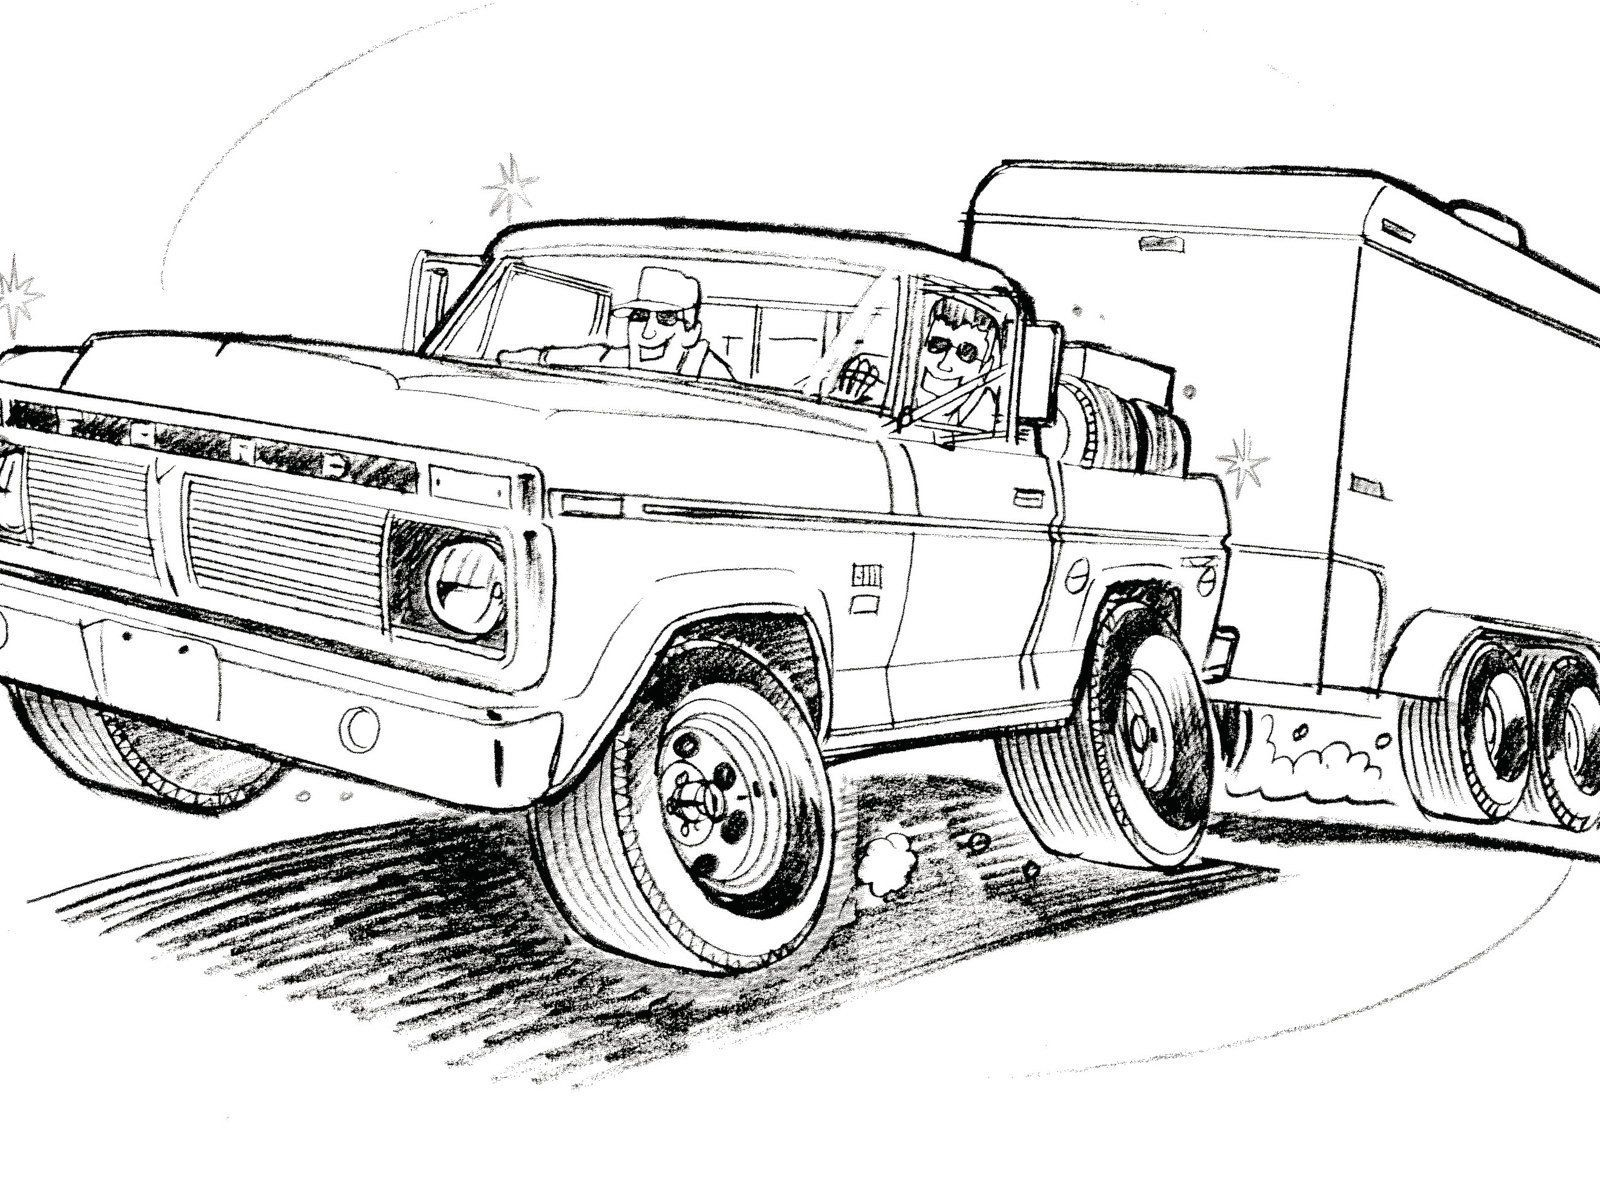 Cct 04 O Ford F350 E40d Transmission Swap Drawing